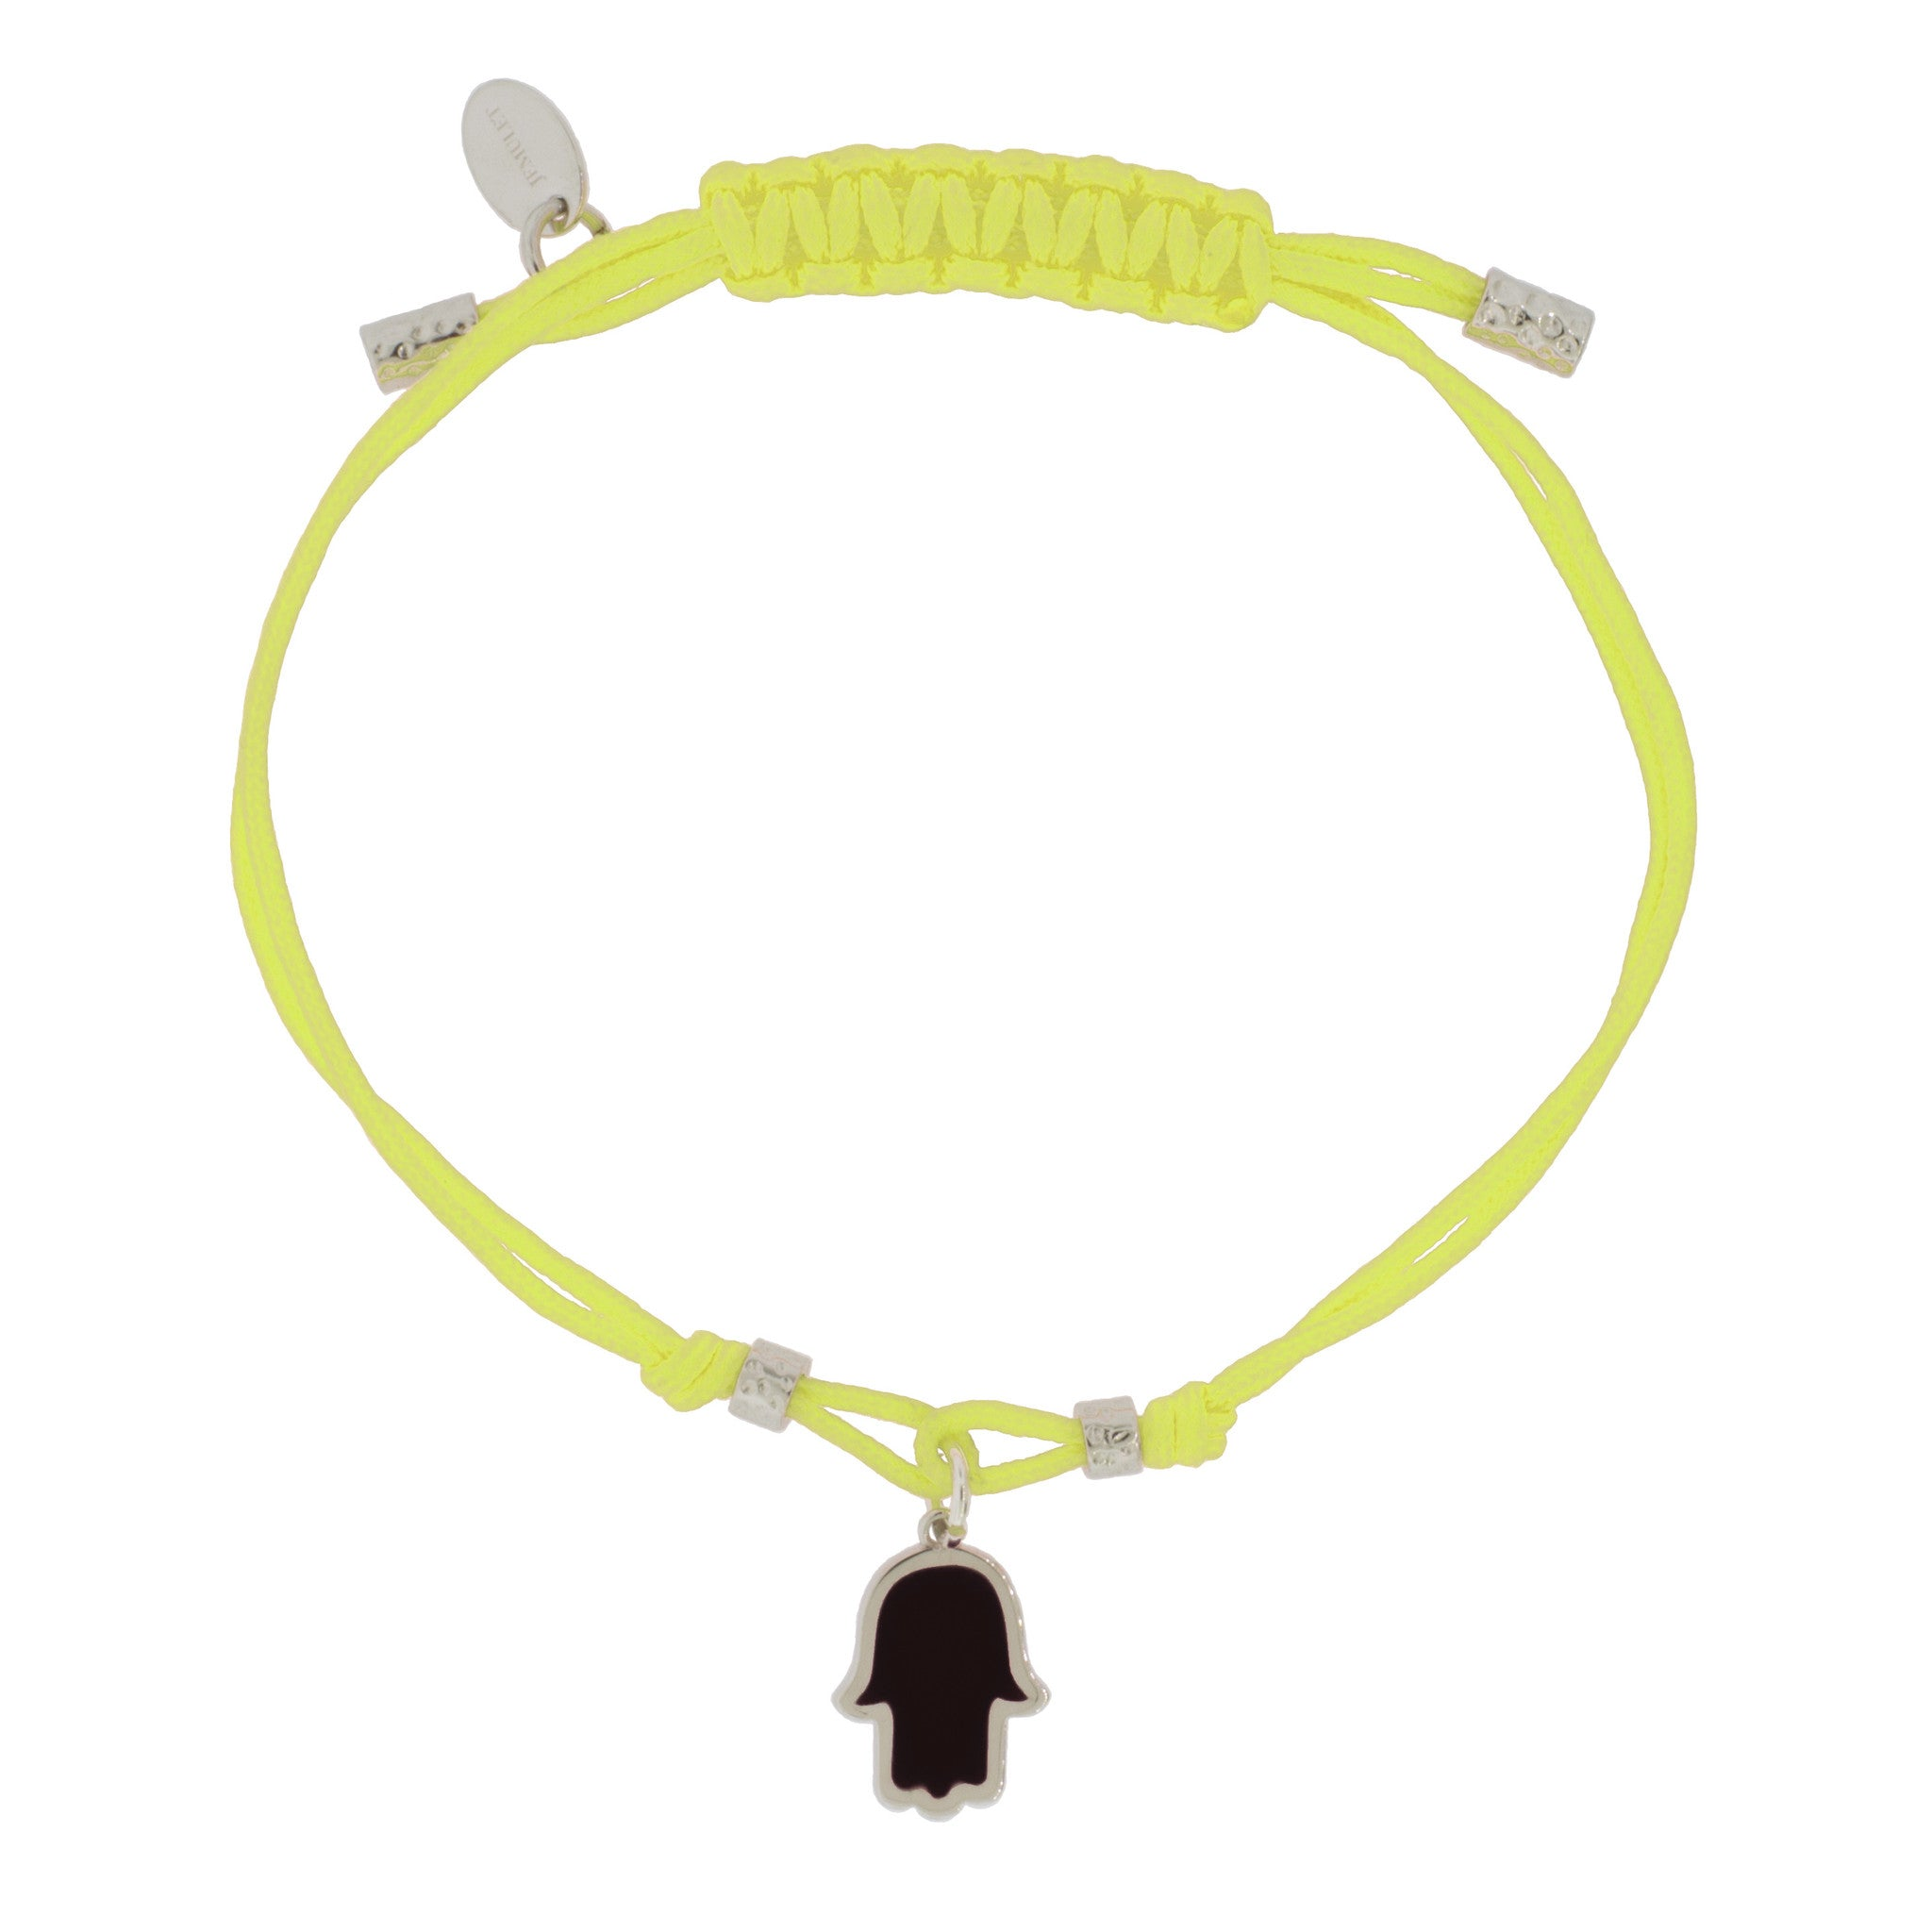 Touch of Luck Pendant Bracelet - Neon Yellow